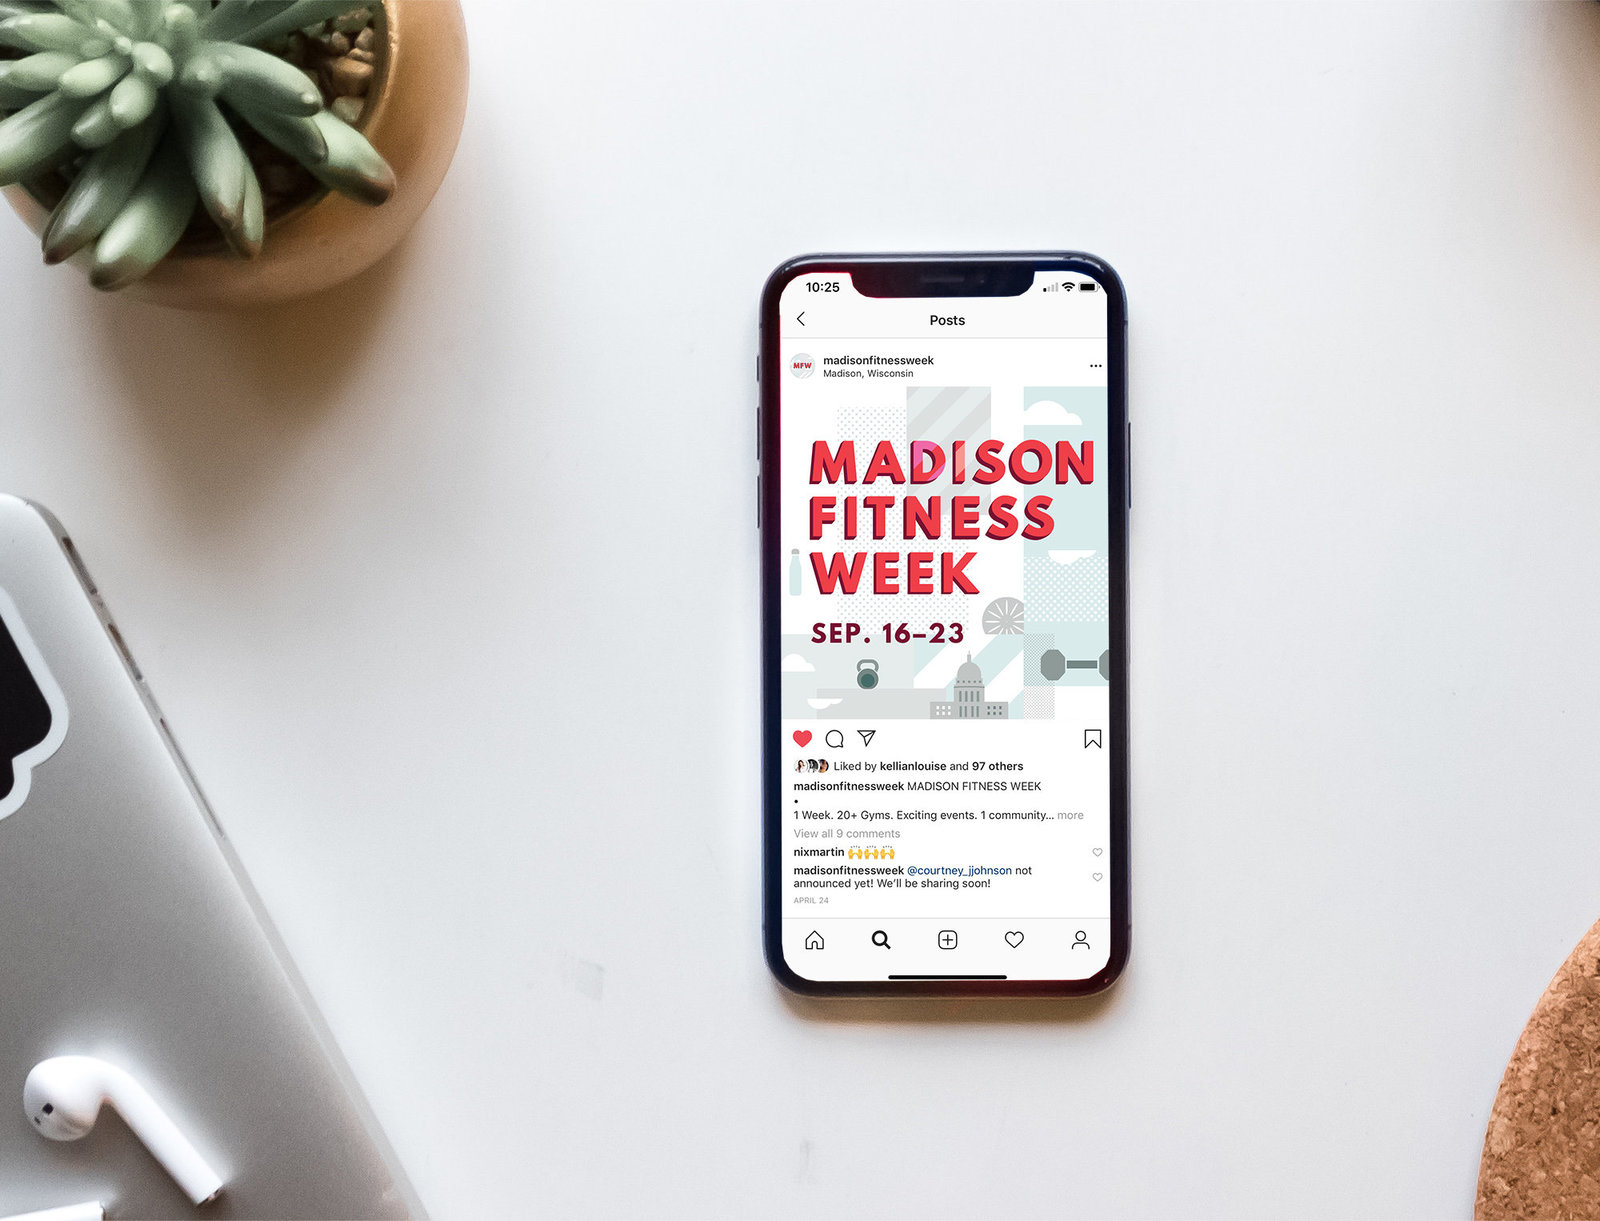 Instagram social media  design for Madison Fitness Week by Christie Evenson, graphic designer and illustrator